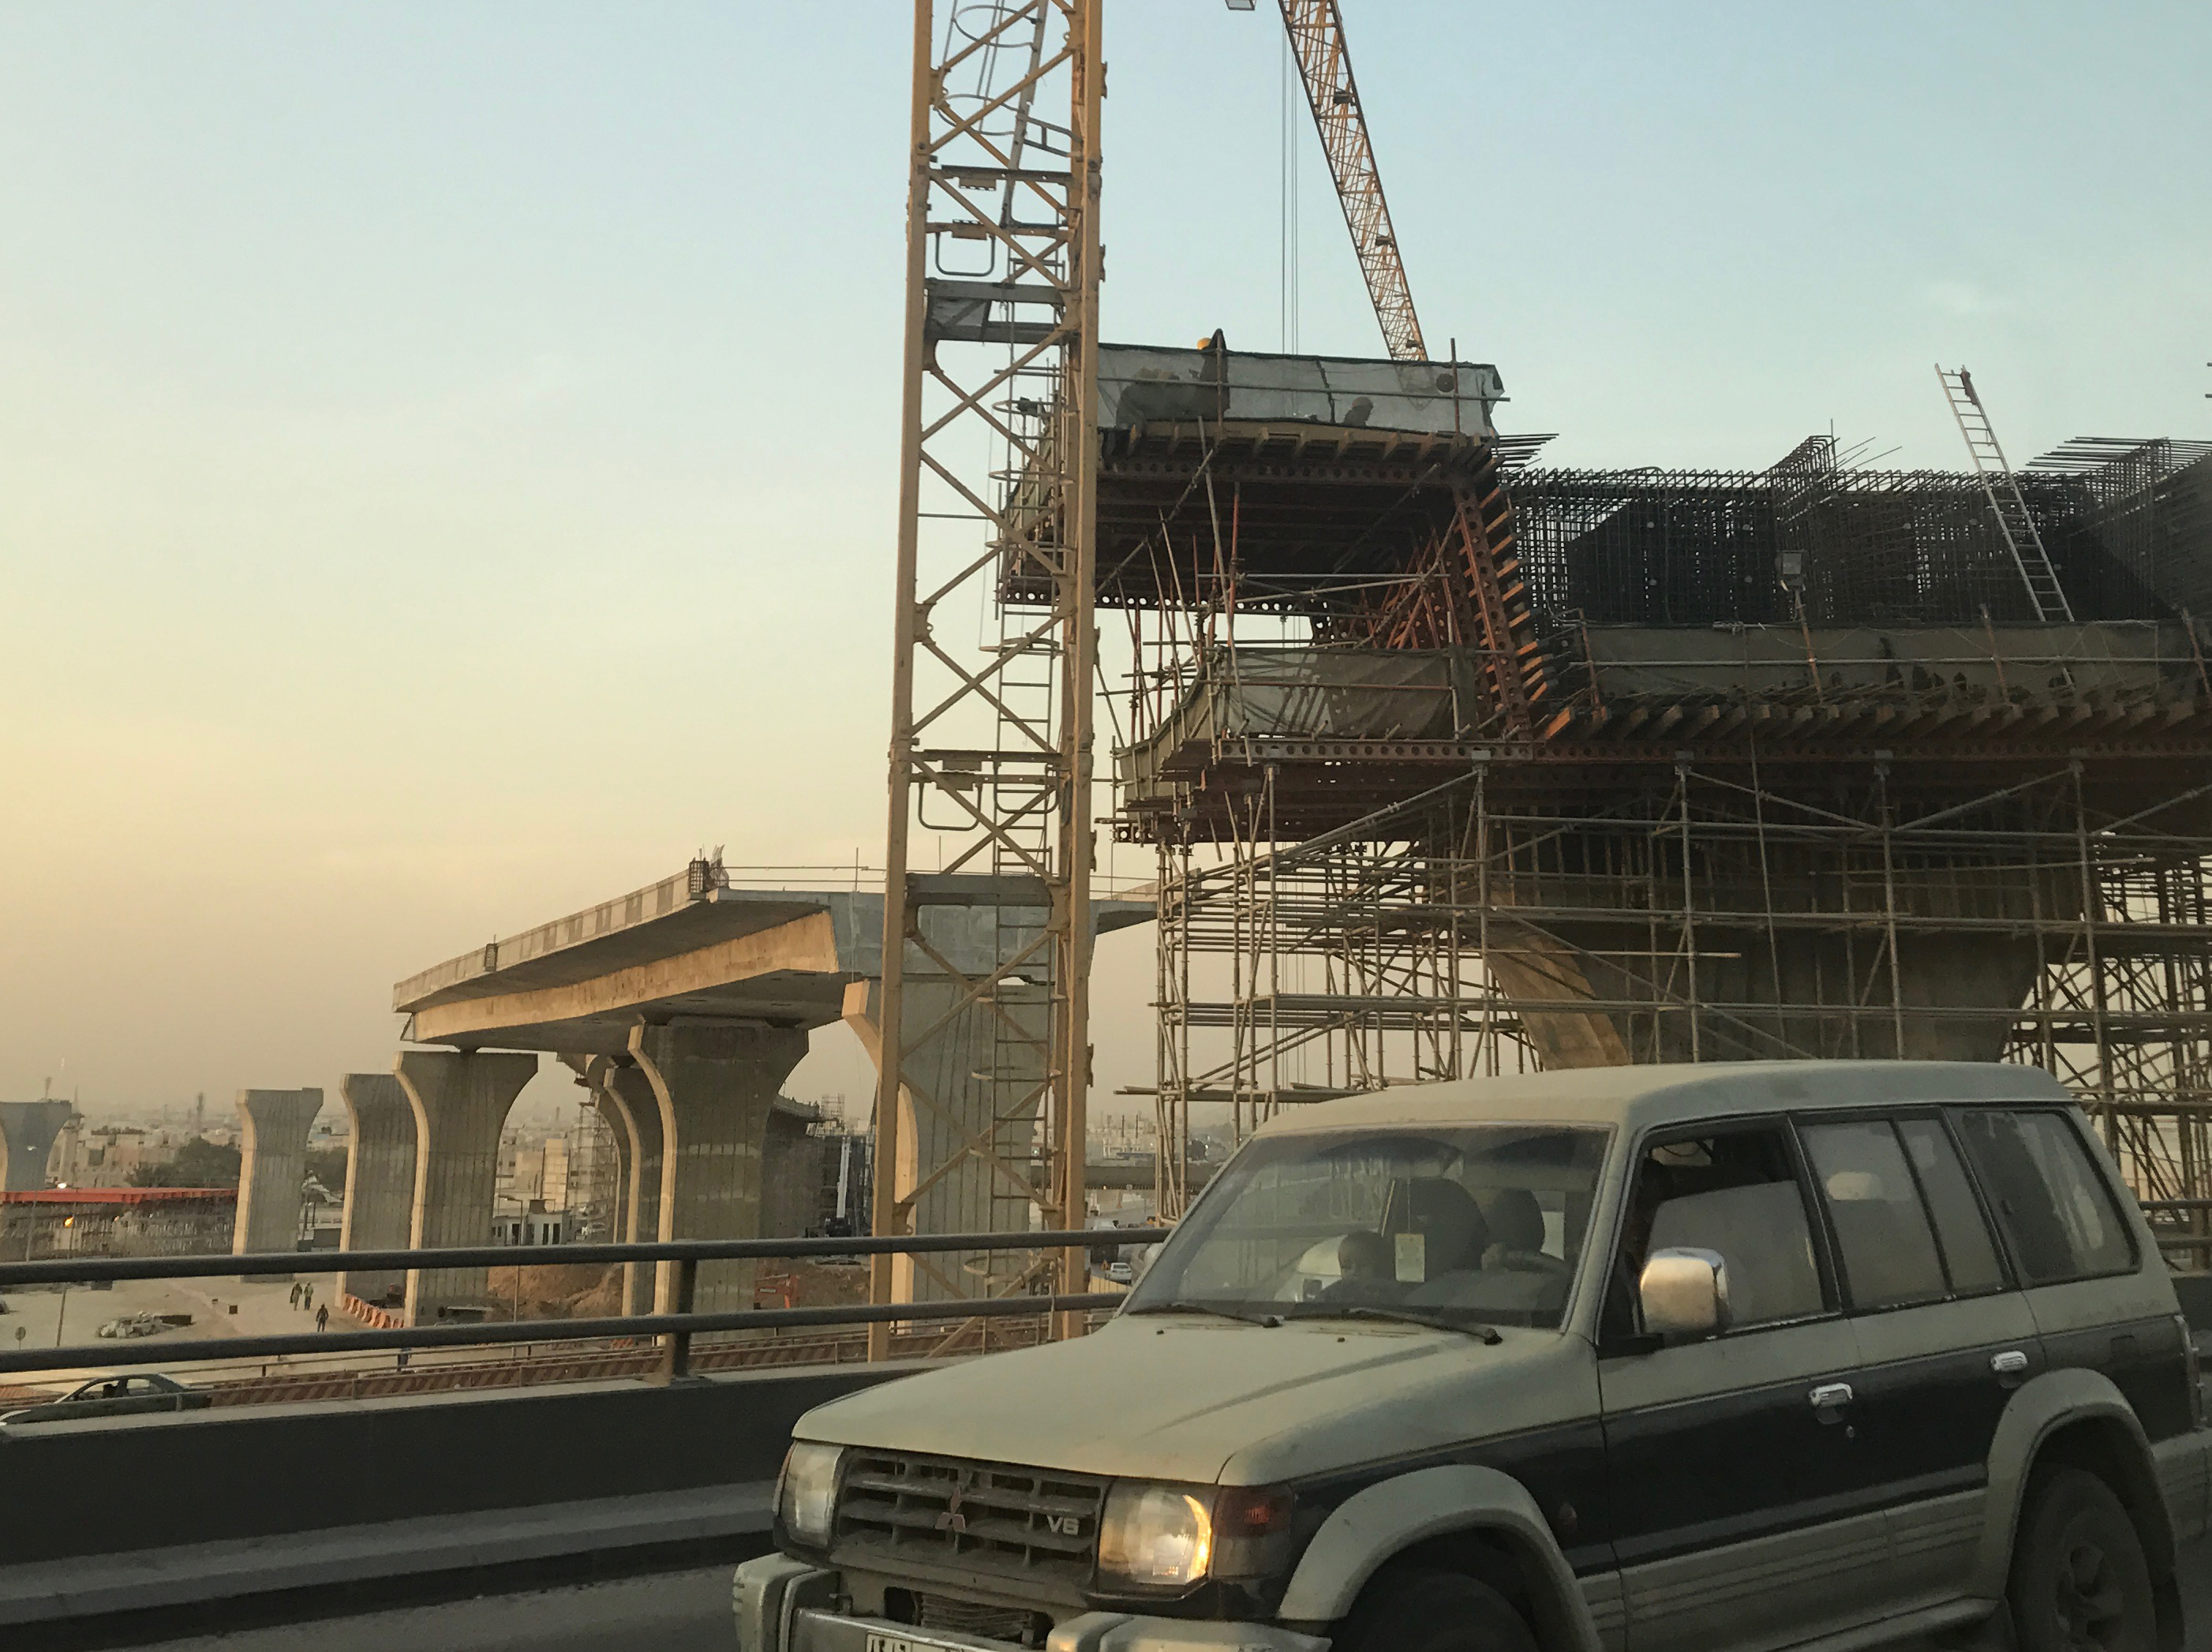 A portion of the Riyadh Metro under construction as of January 2017.